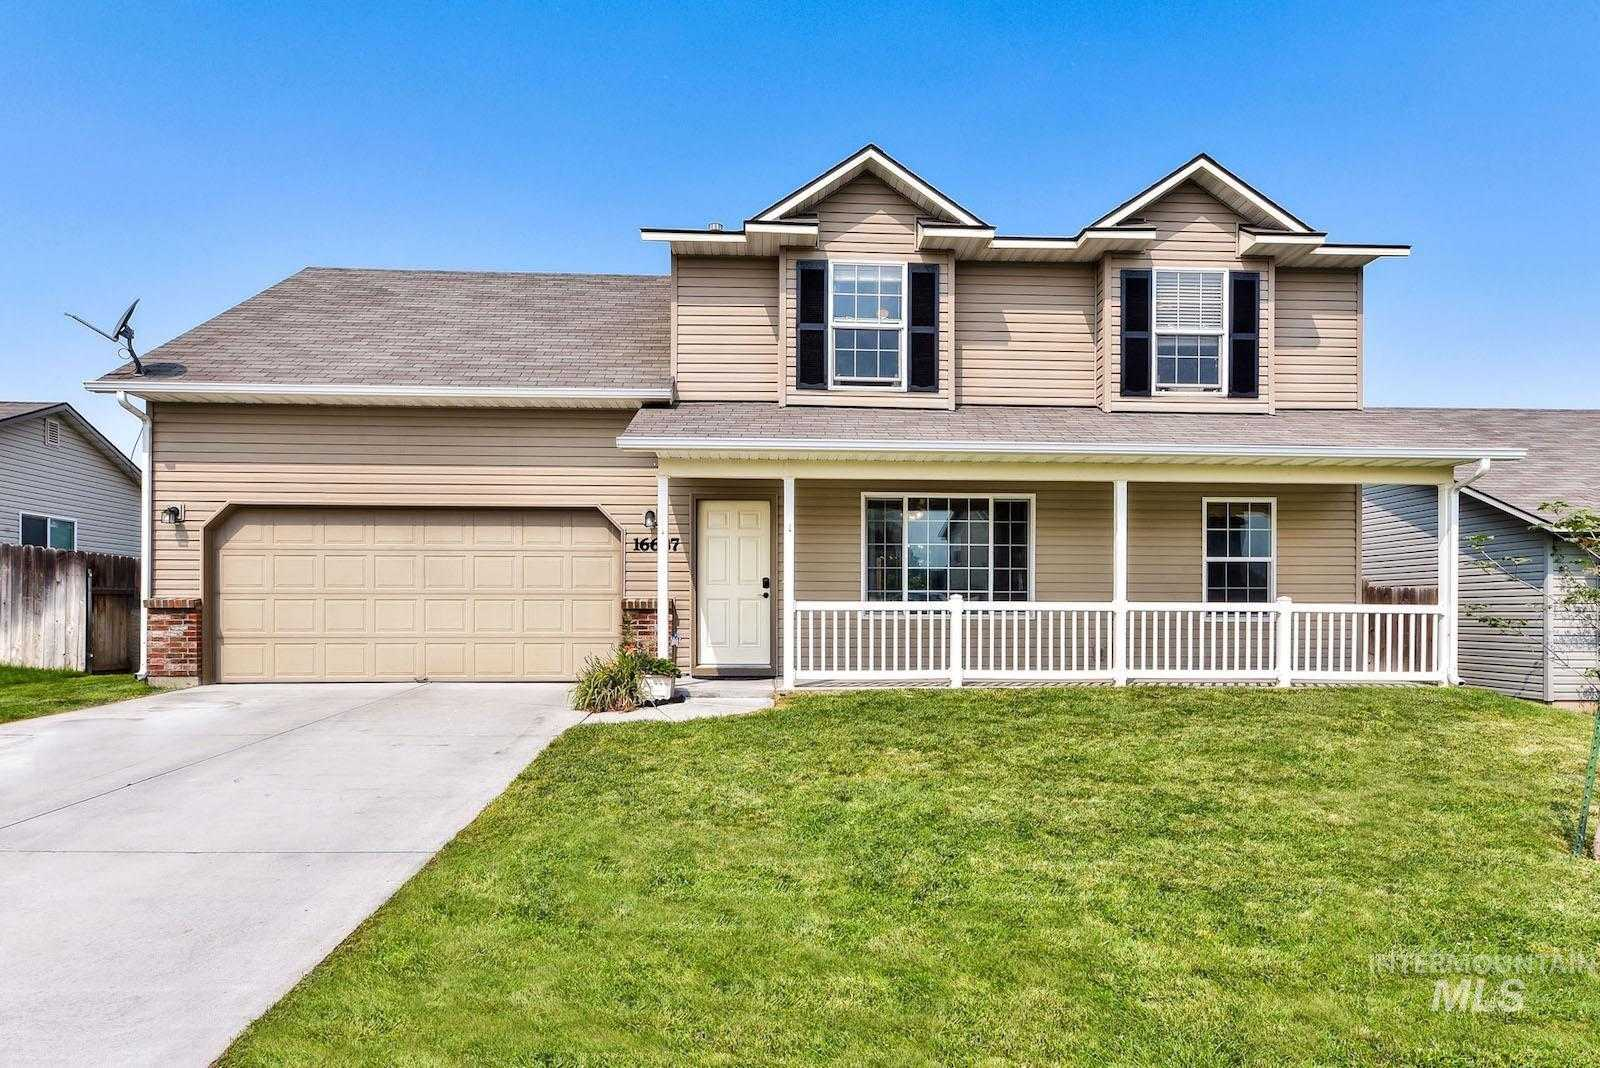 $373,500 - 4Br/3Ba -  for Sale in South Park Sub, Caldwell